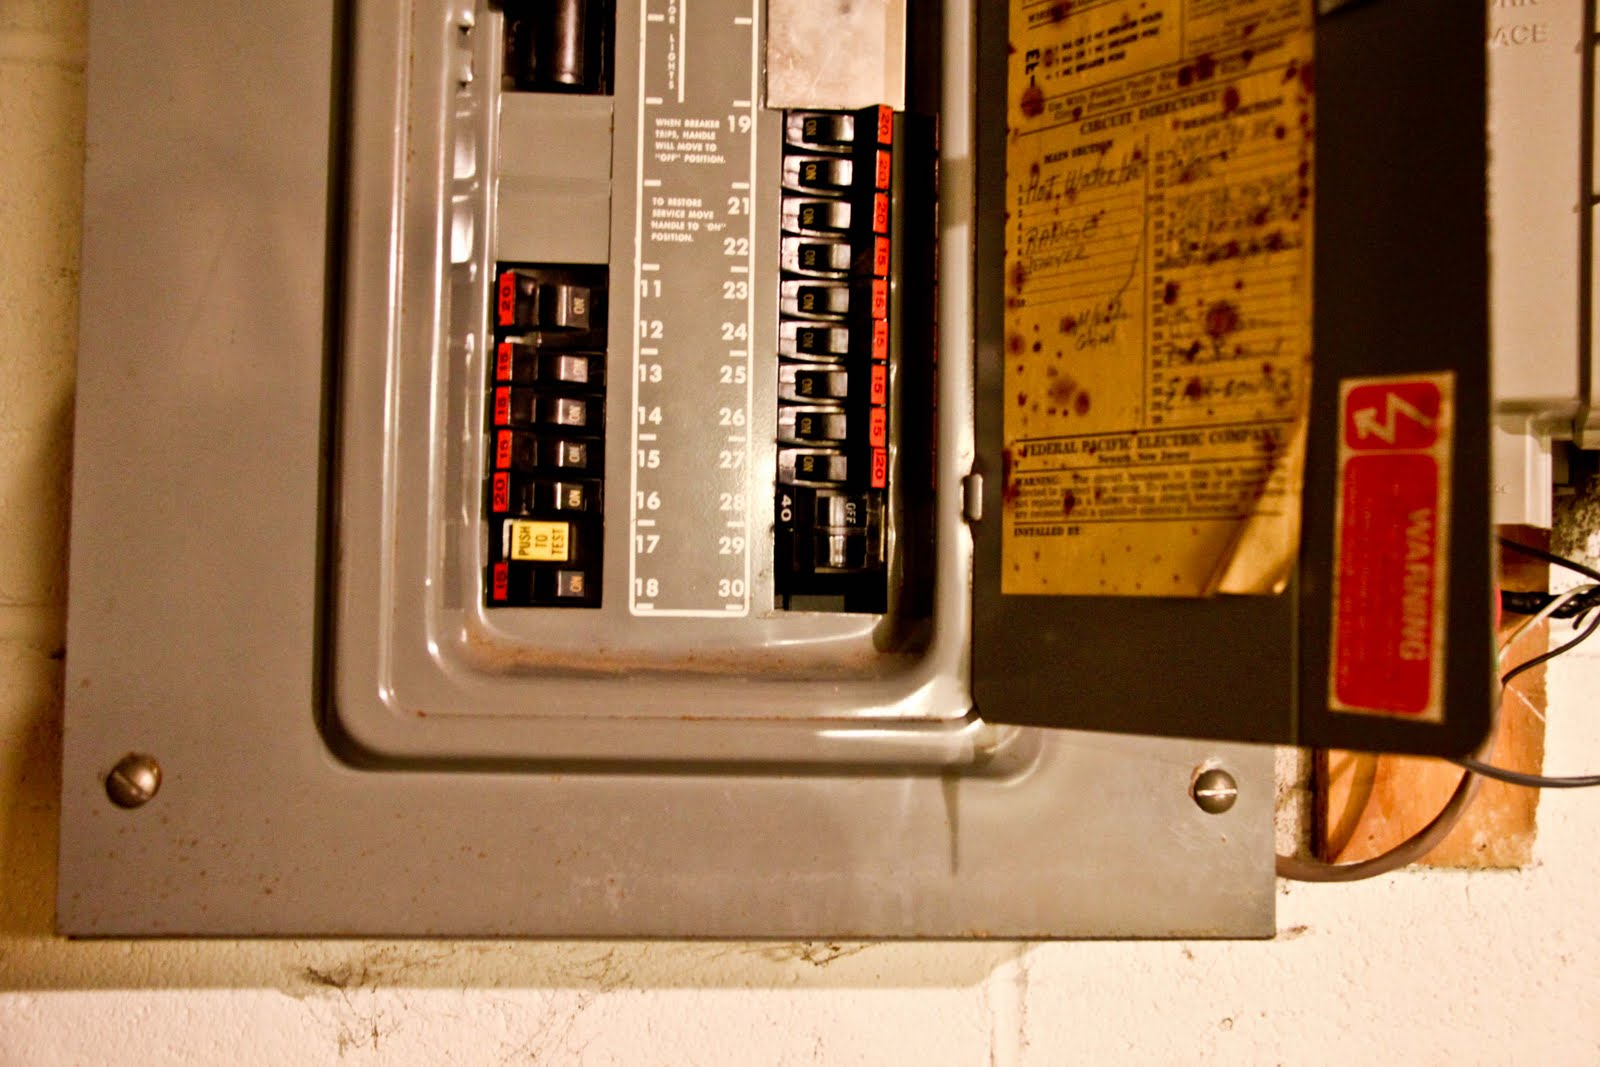 IMG_4614 replacing fuse on central ac unit work space how to reset fuse box in house at alyssarenee.co